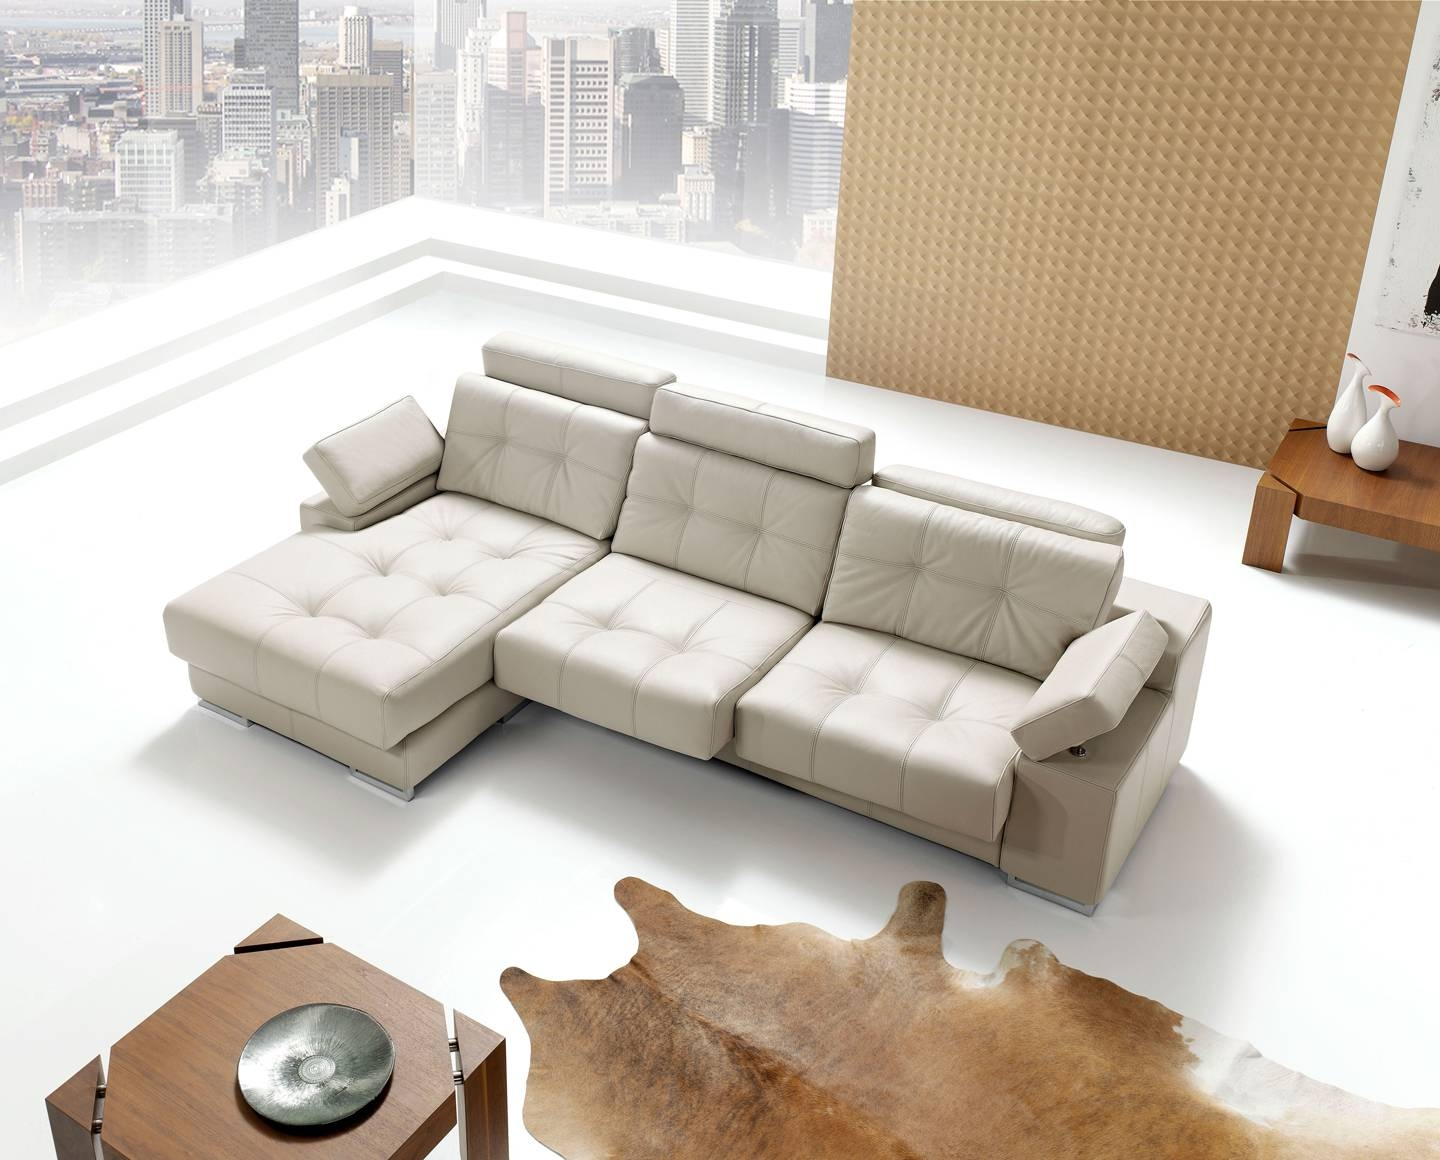 100 Genuine Italian Quality Leather Sectionals Corner Couches Throughout European Sectional Sofas (Image 3 of 15)